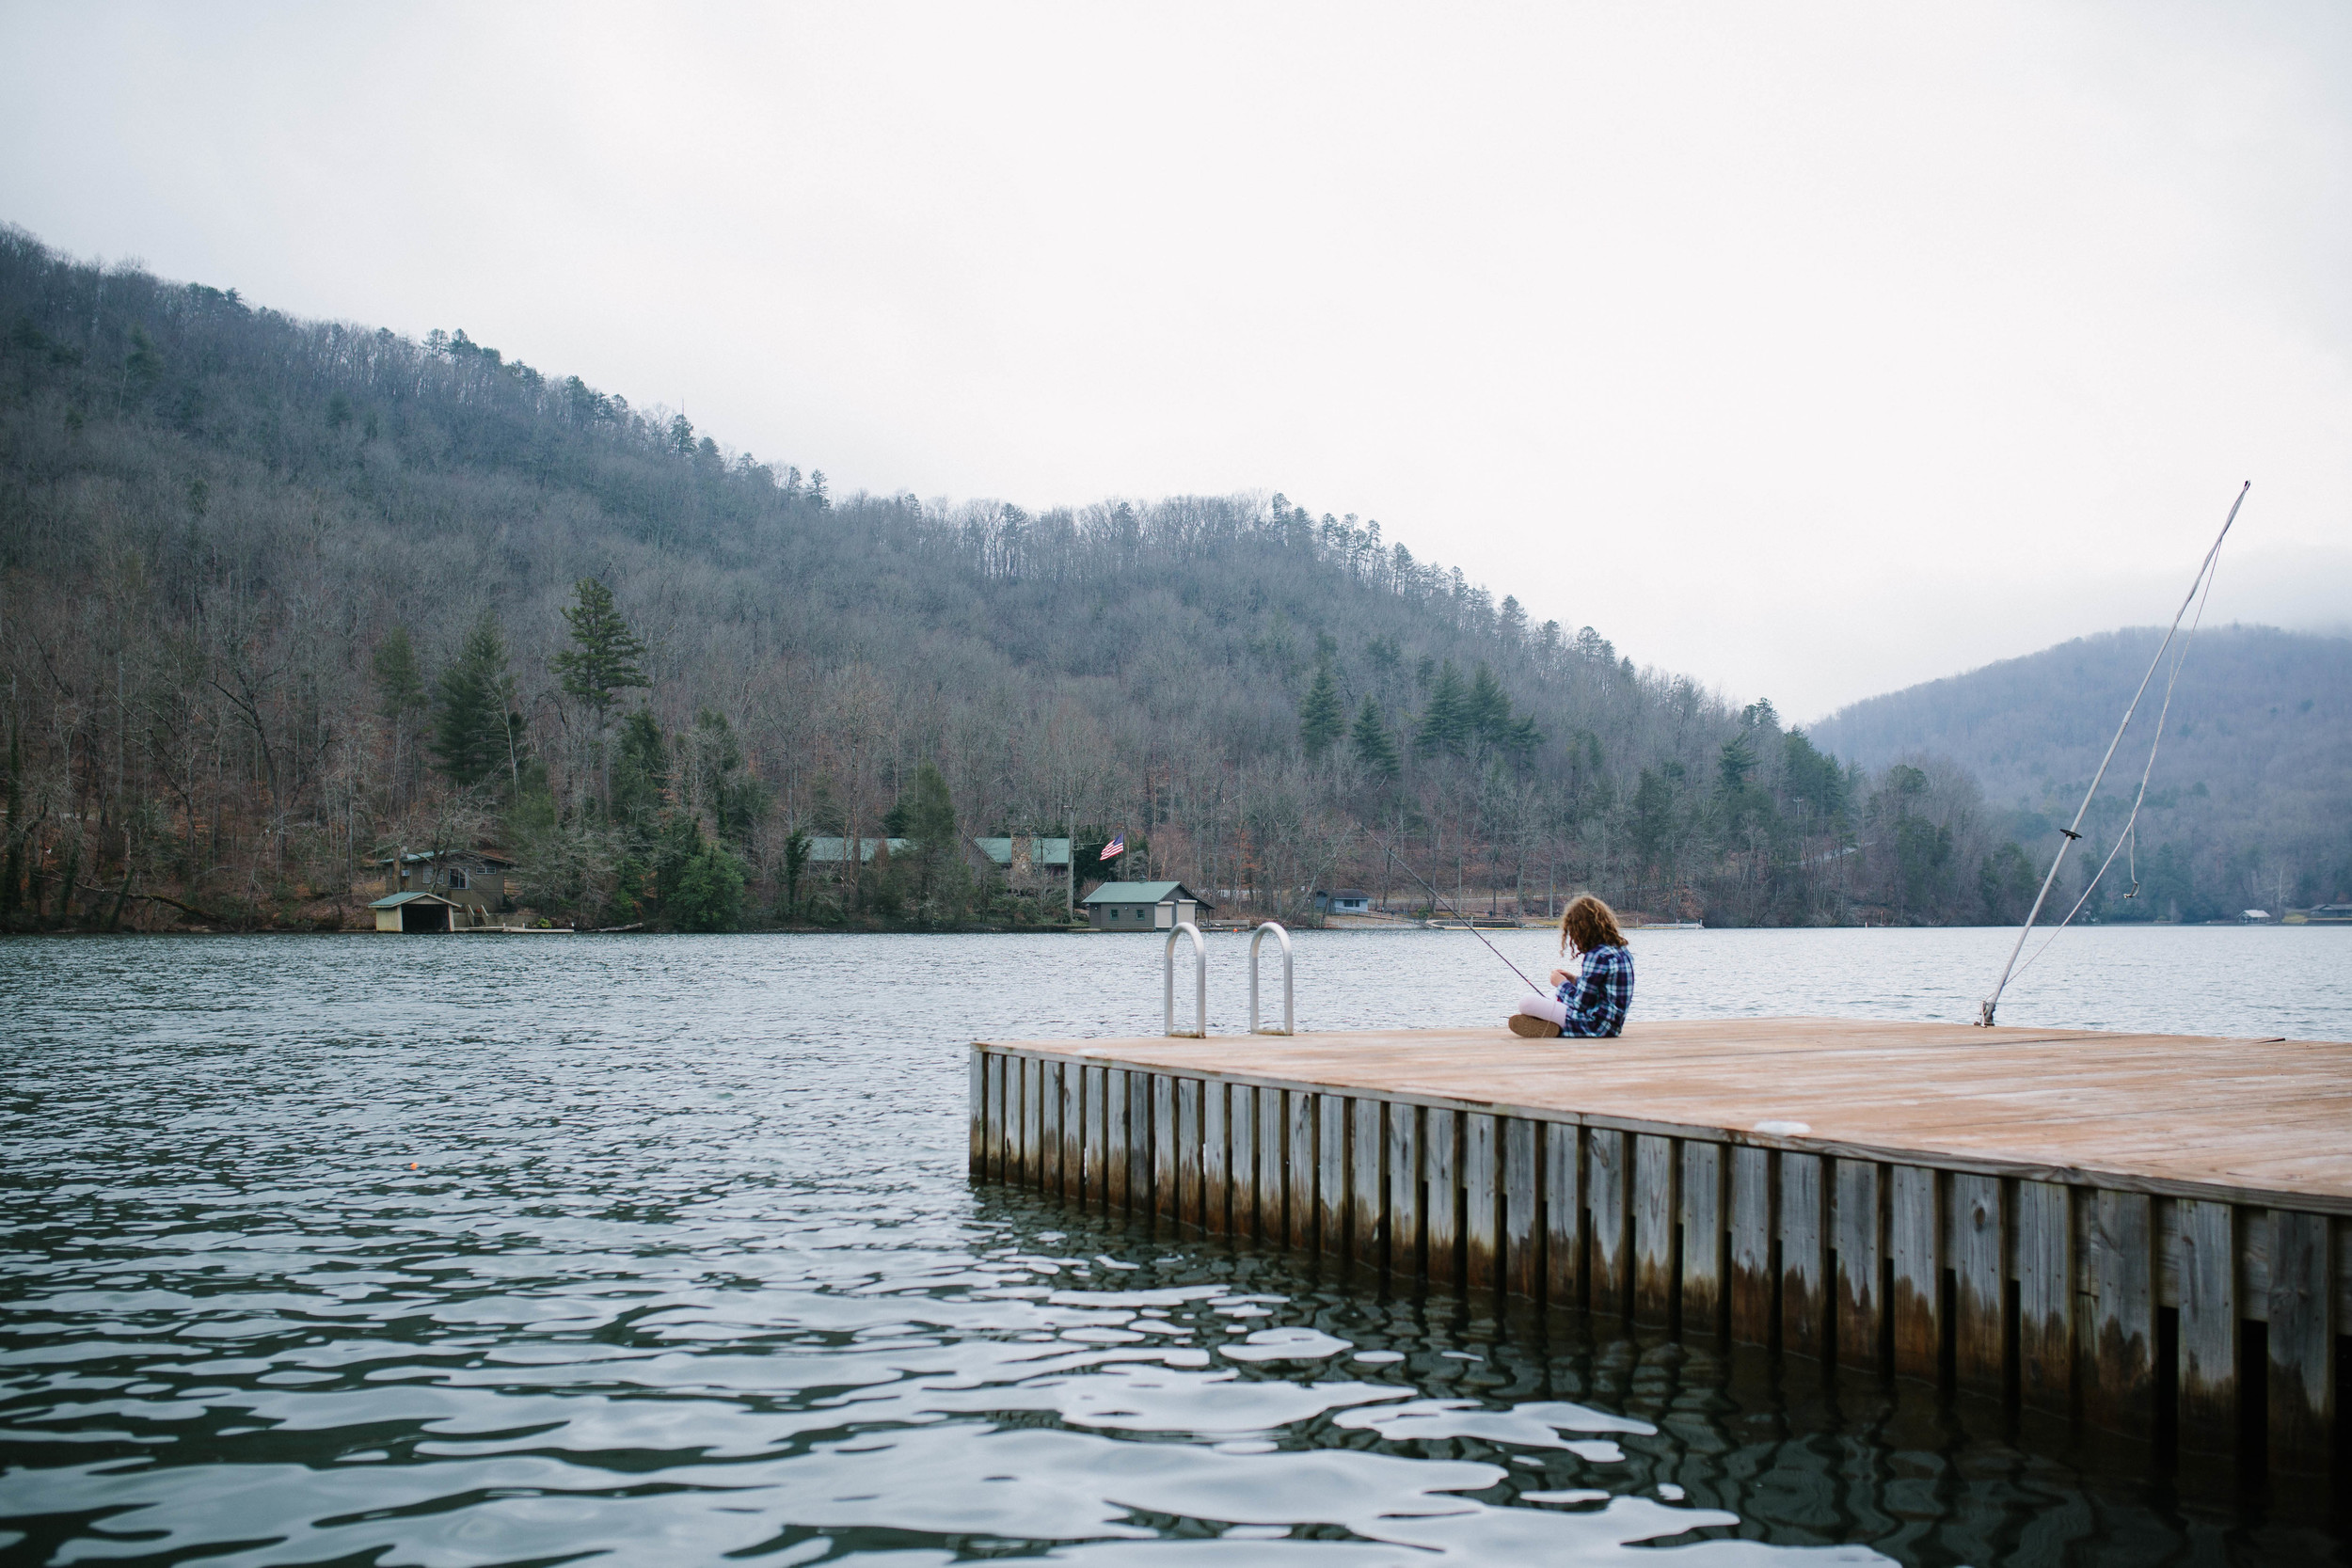 Image from behind of girl sitting on dock fishing